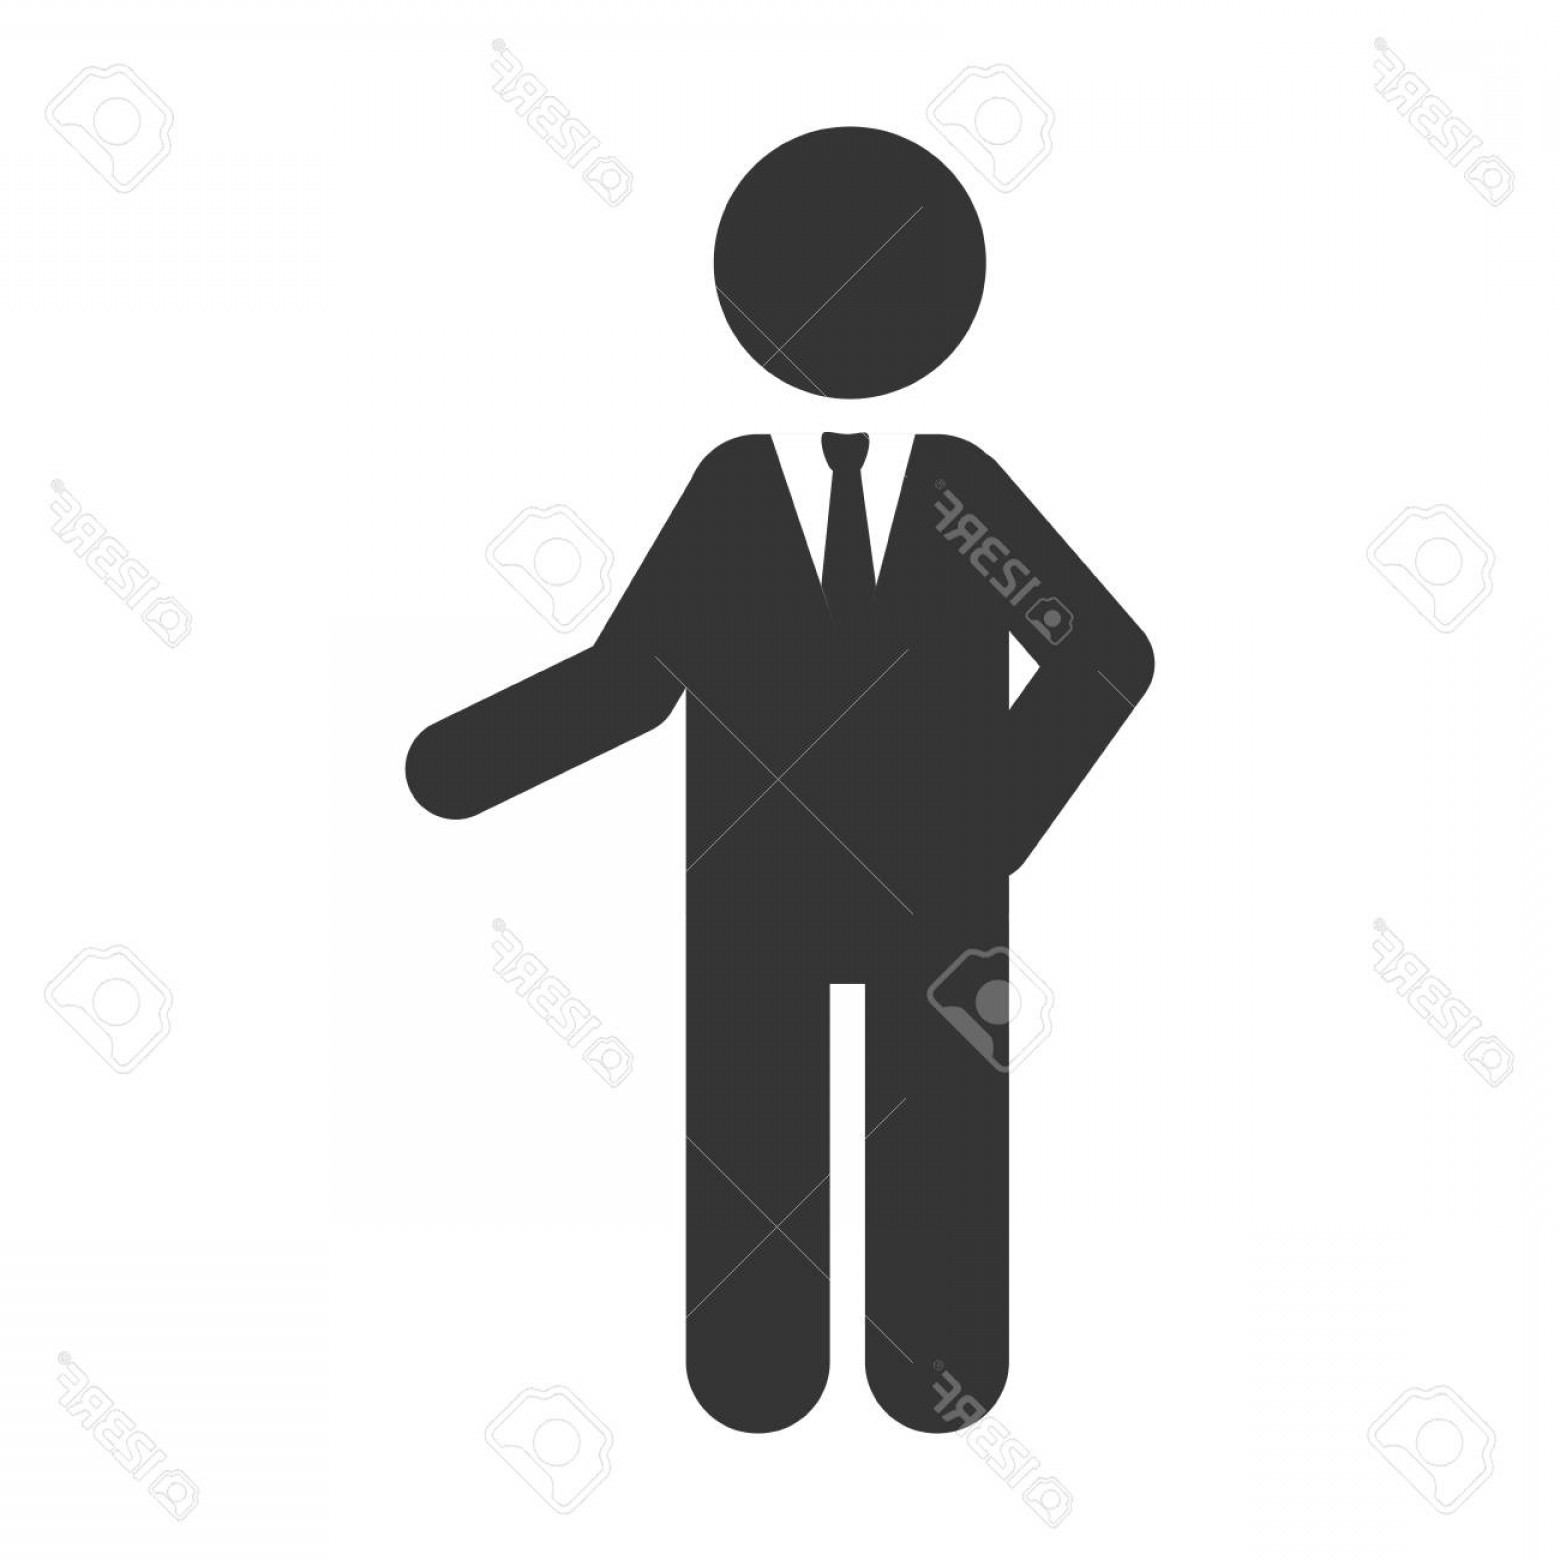 Vector Executive: Photostock Vector Business Businessperson Man Suit Silhouette Tie Executive Vector Graphic Isolated And Flat Illustrat